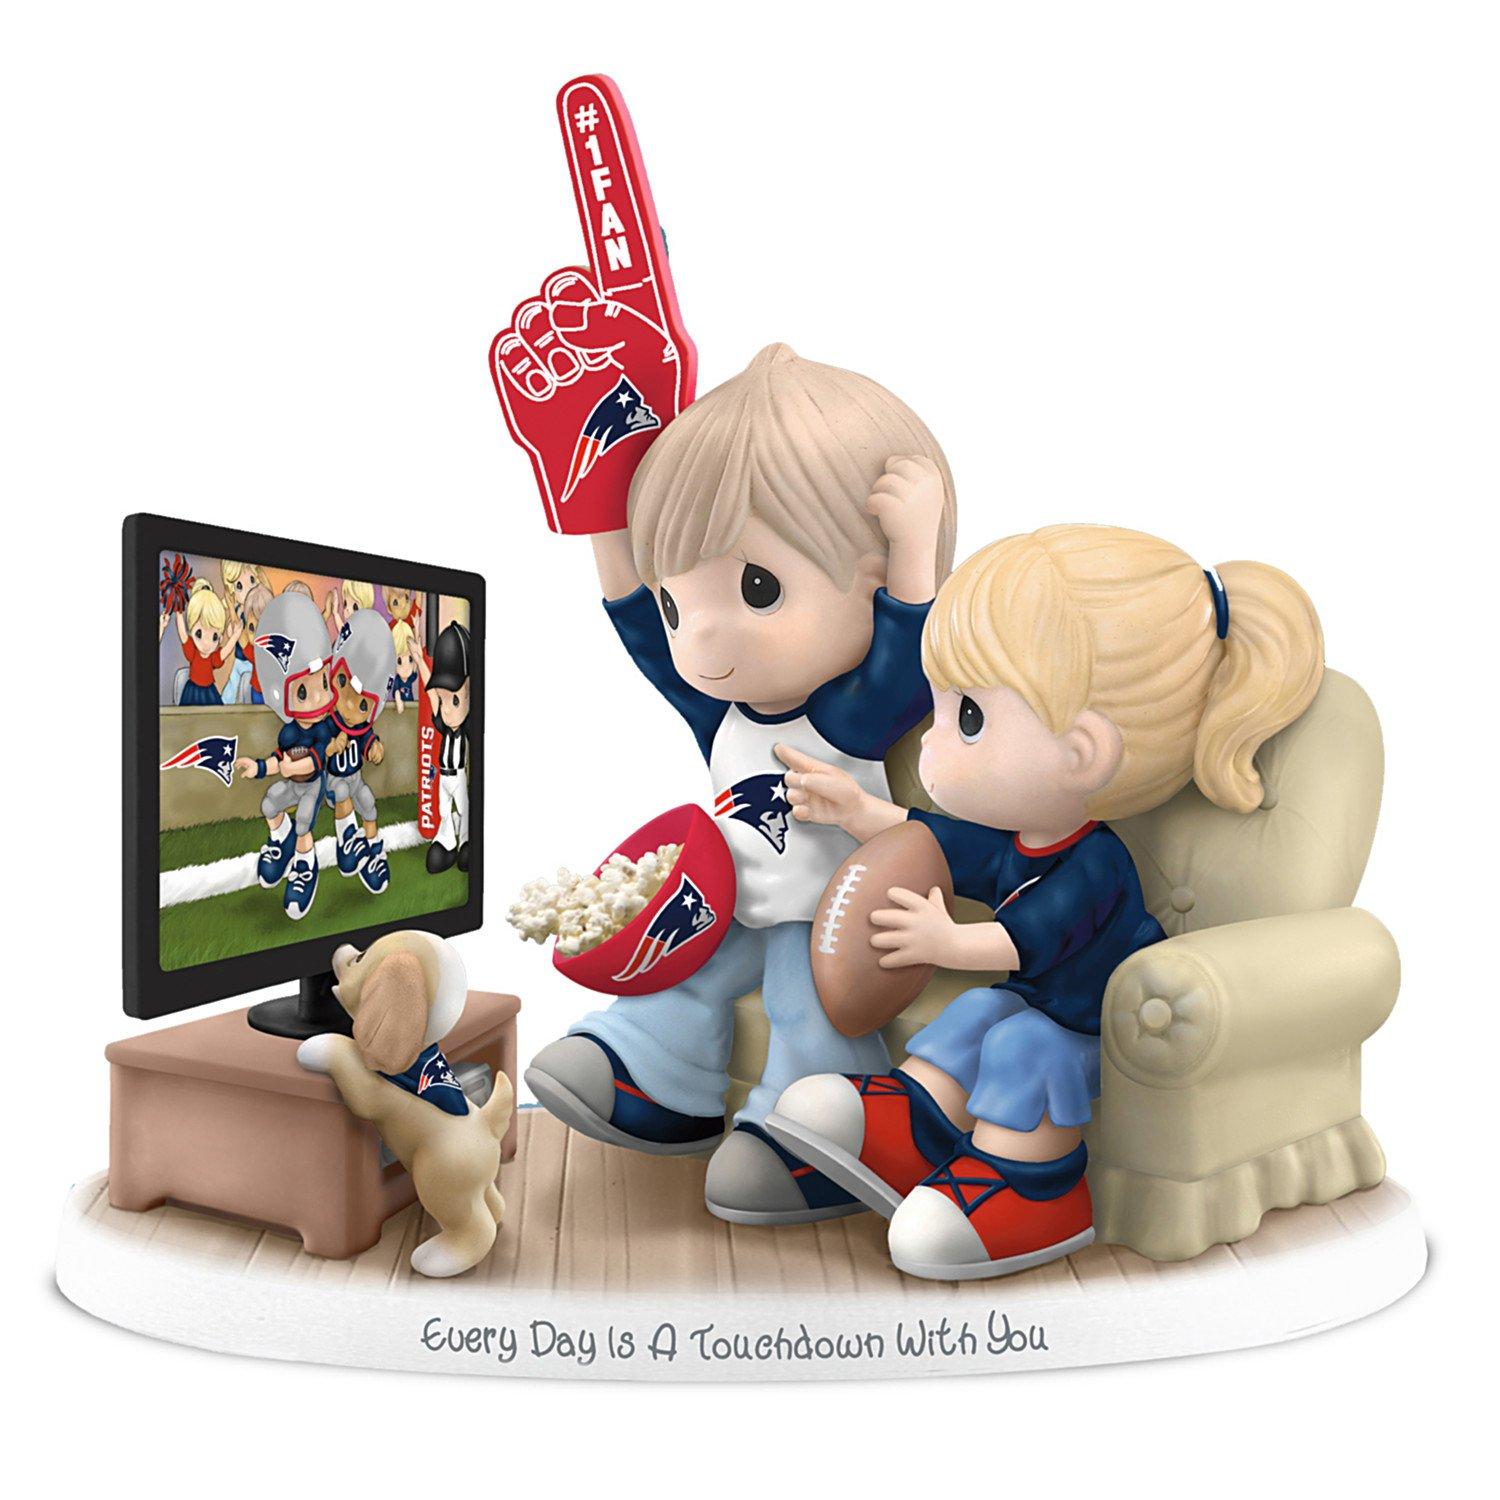 Figurine: Precious Moments Every Day Is A Touchdown With You Patriots Figurine by The Hamilton Collection